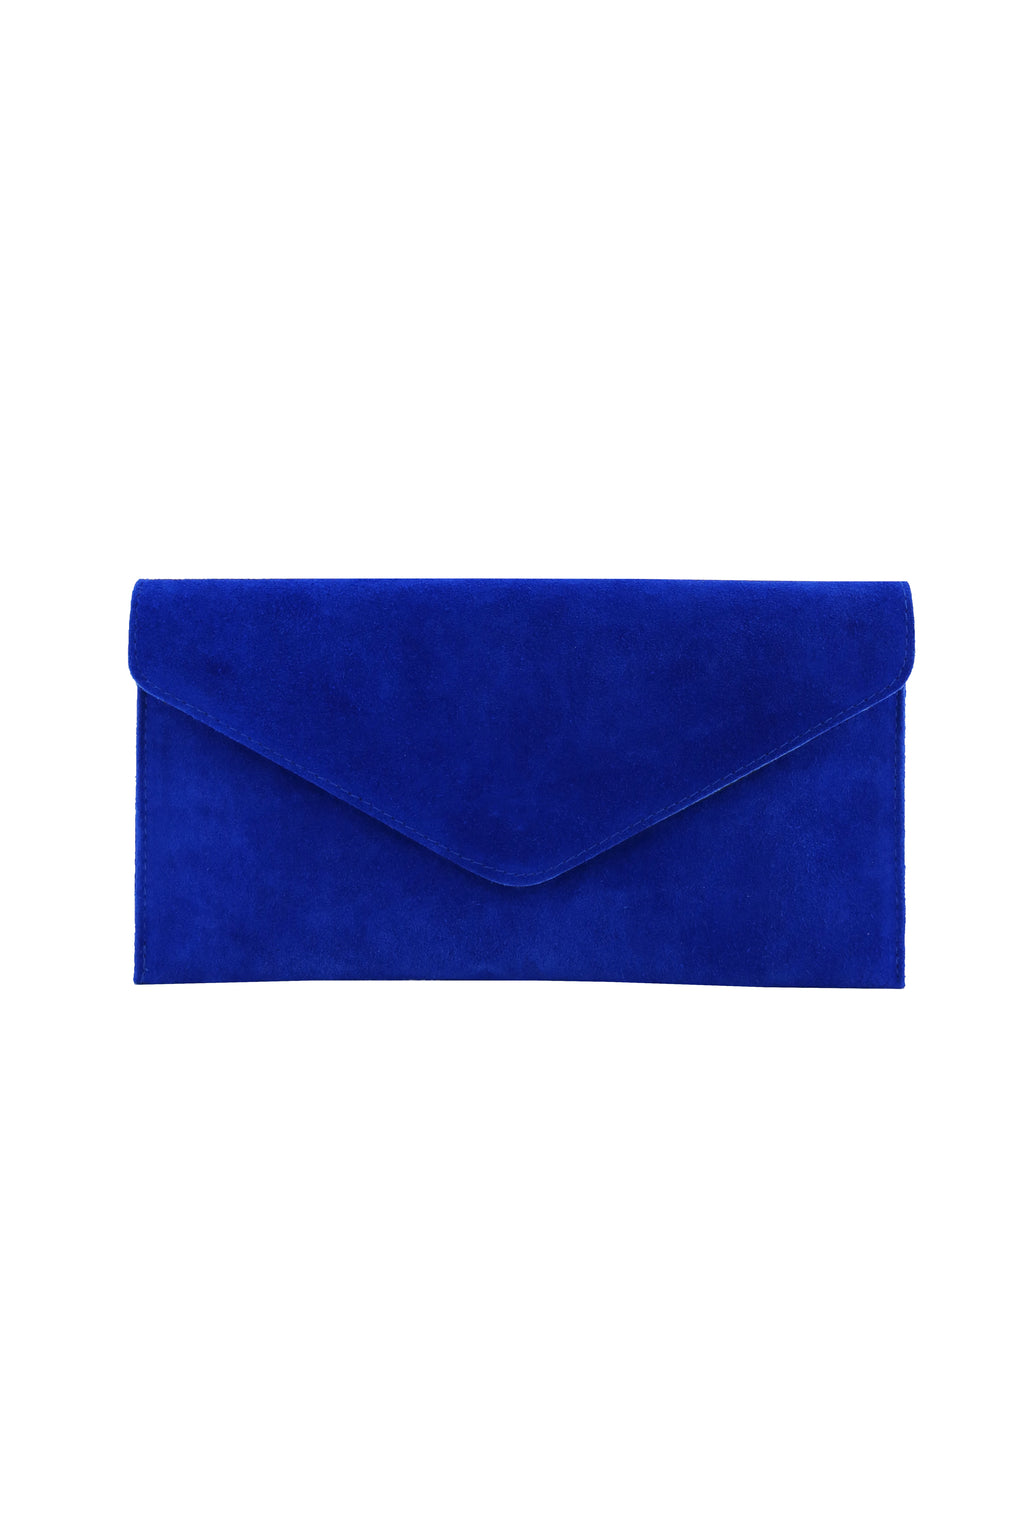 SADË ROYAL BLUE CLUTCH BAG